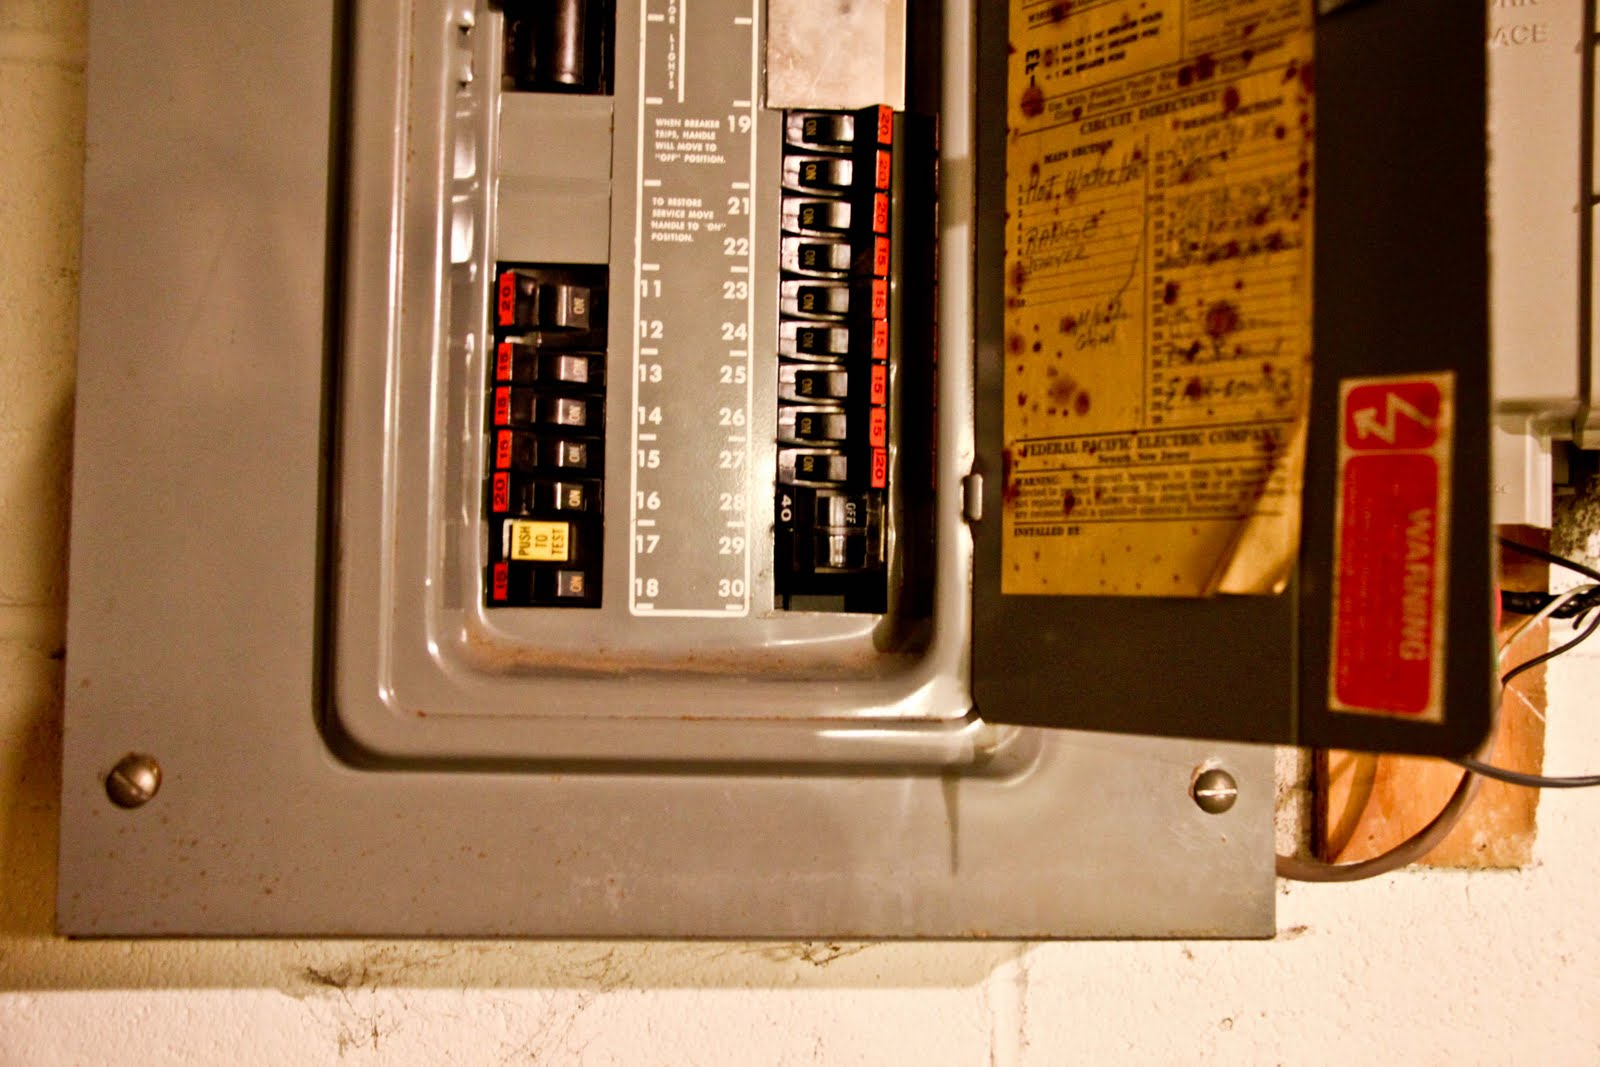 Replacing Fuse On Central Ac Unit Fdo's Workspace 228042 Fuse Box Old Big Fuse  Box